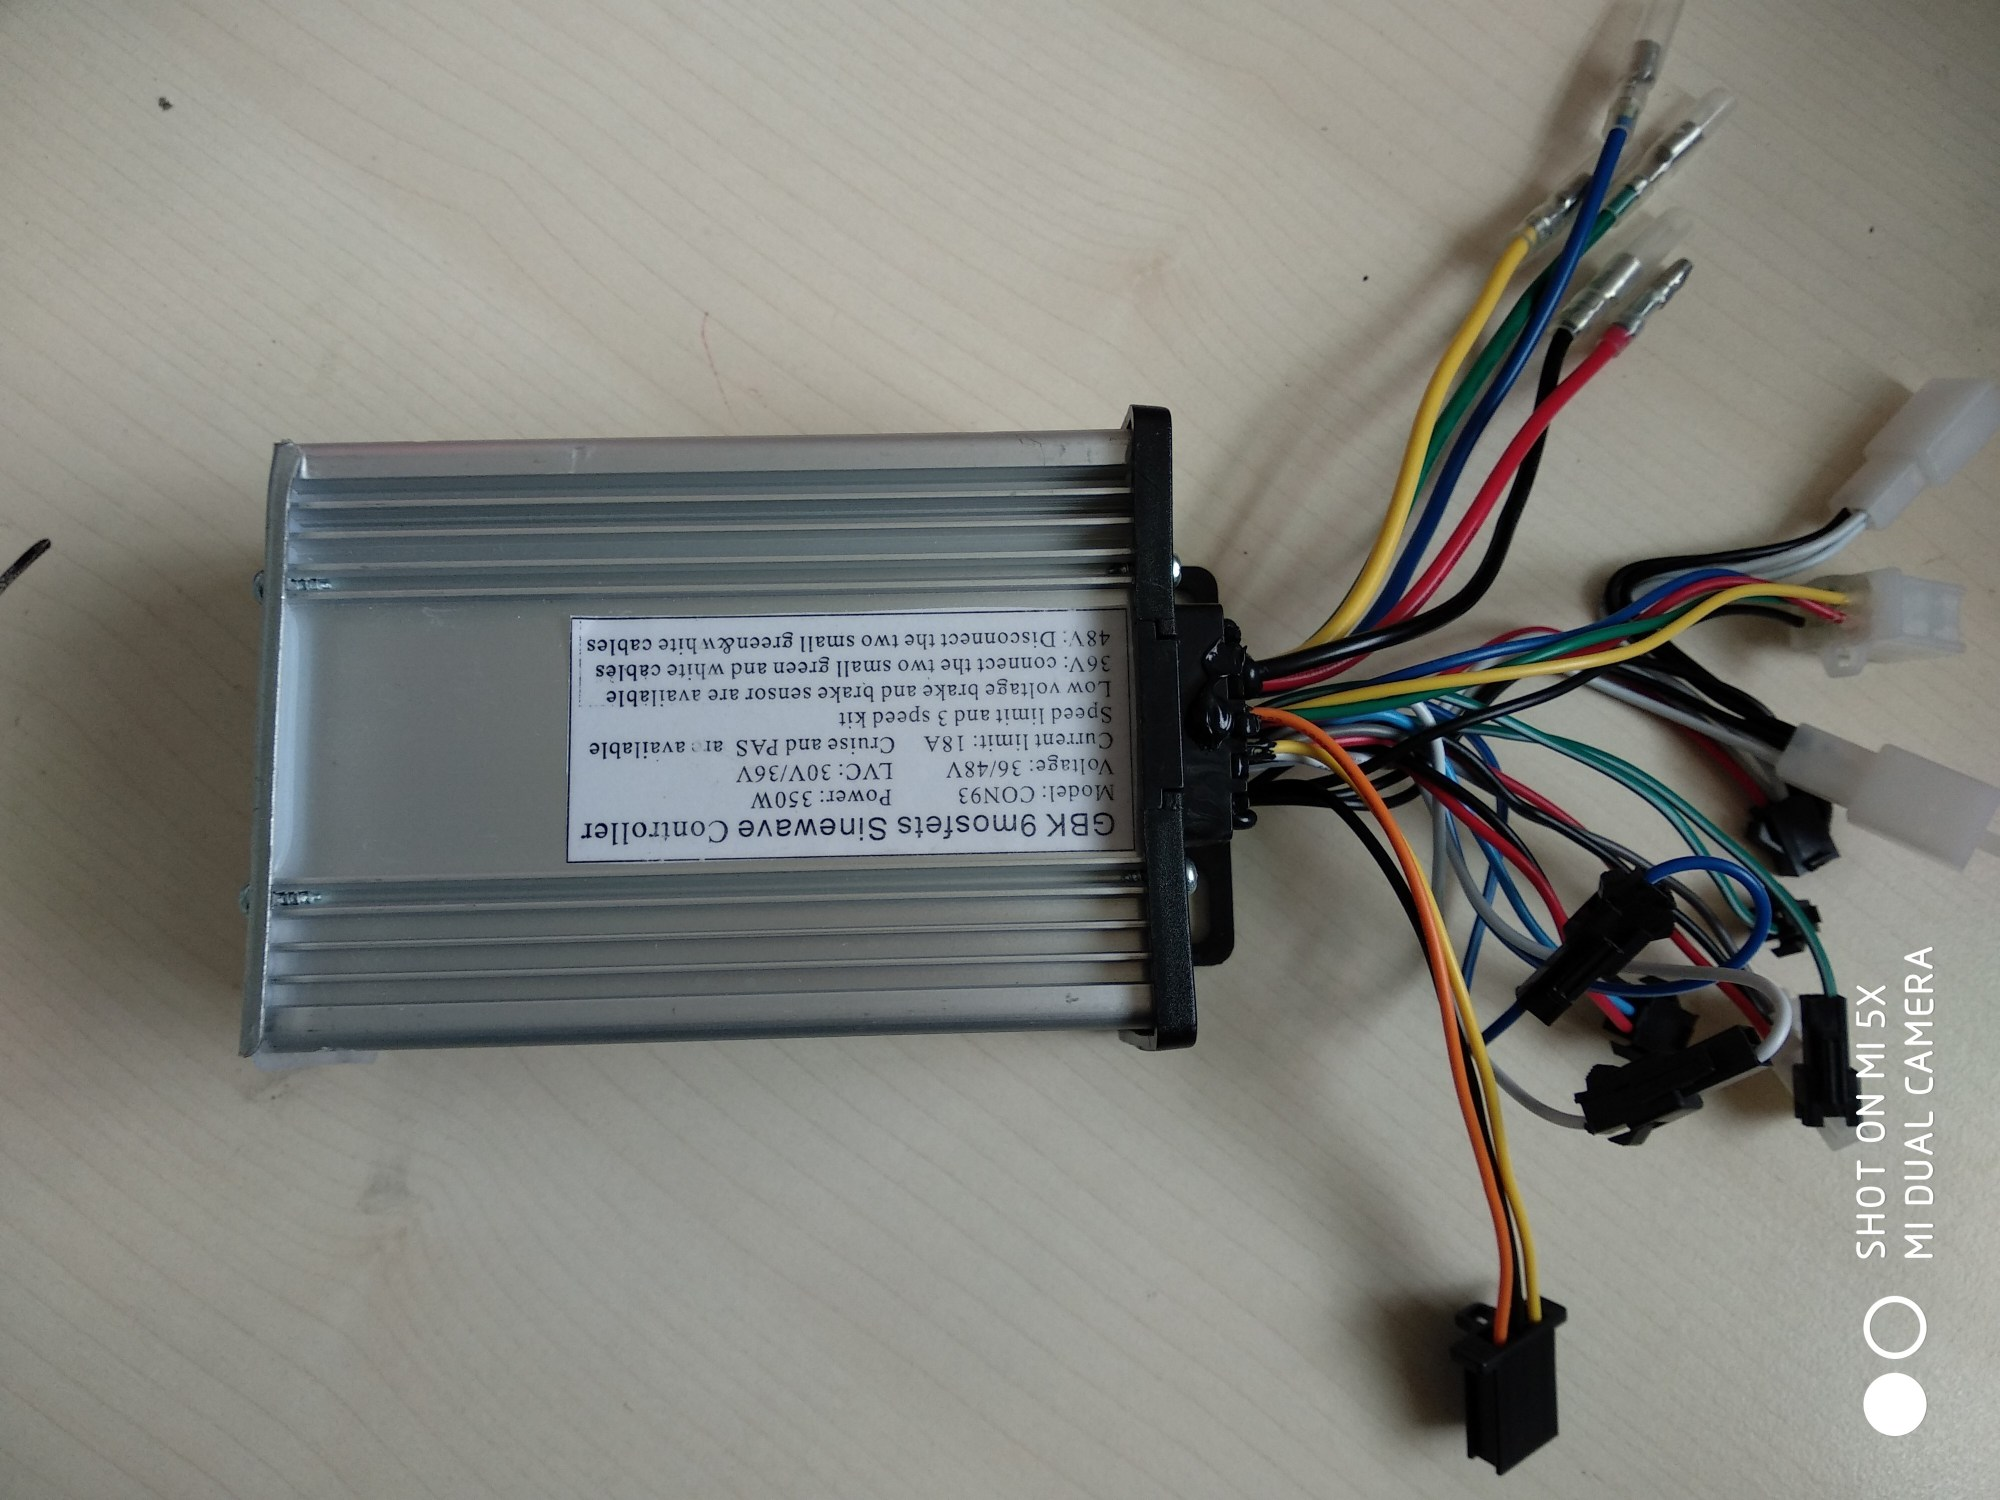 hight resolution of gas furnace wiring diagram moreover electric bike controller wiring